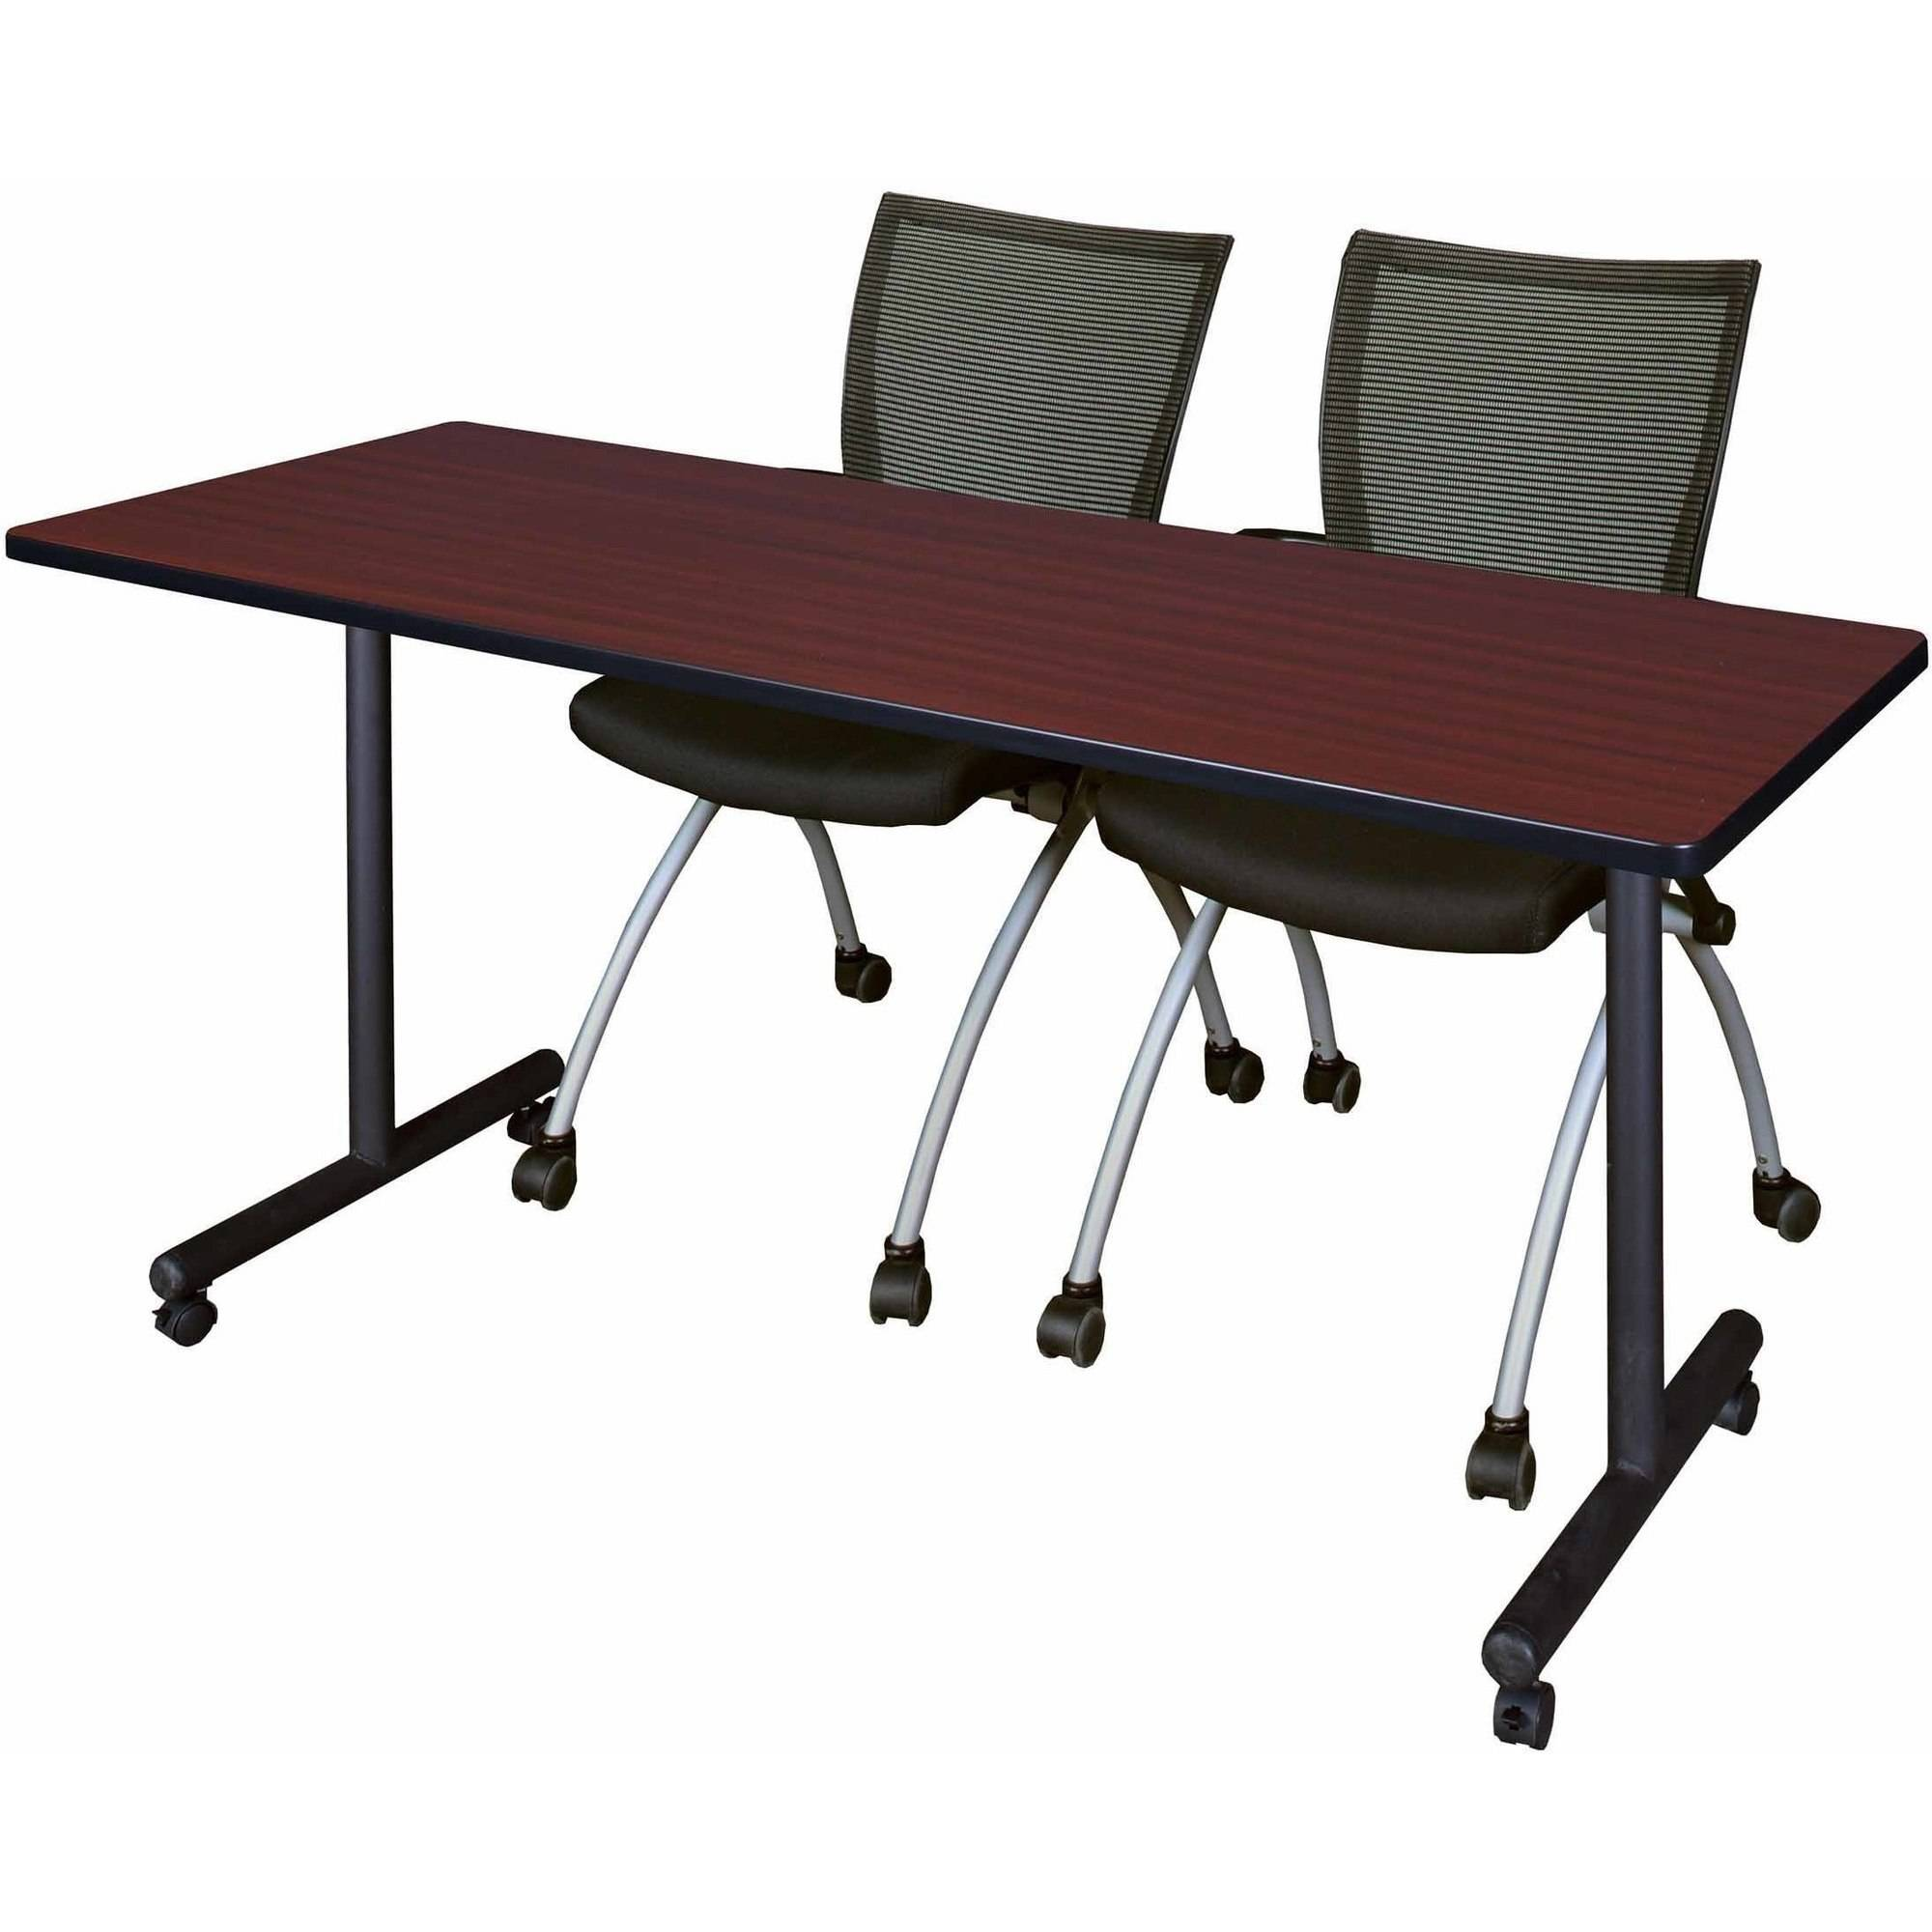 "Kobe 72"" x 24"" Mobile Training Table and 2 Black Apprentice Chairs, Multiple Colors"